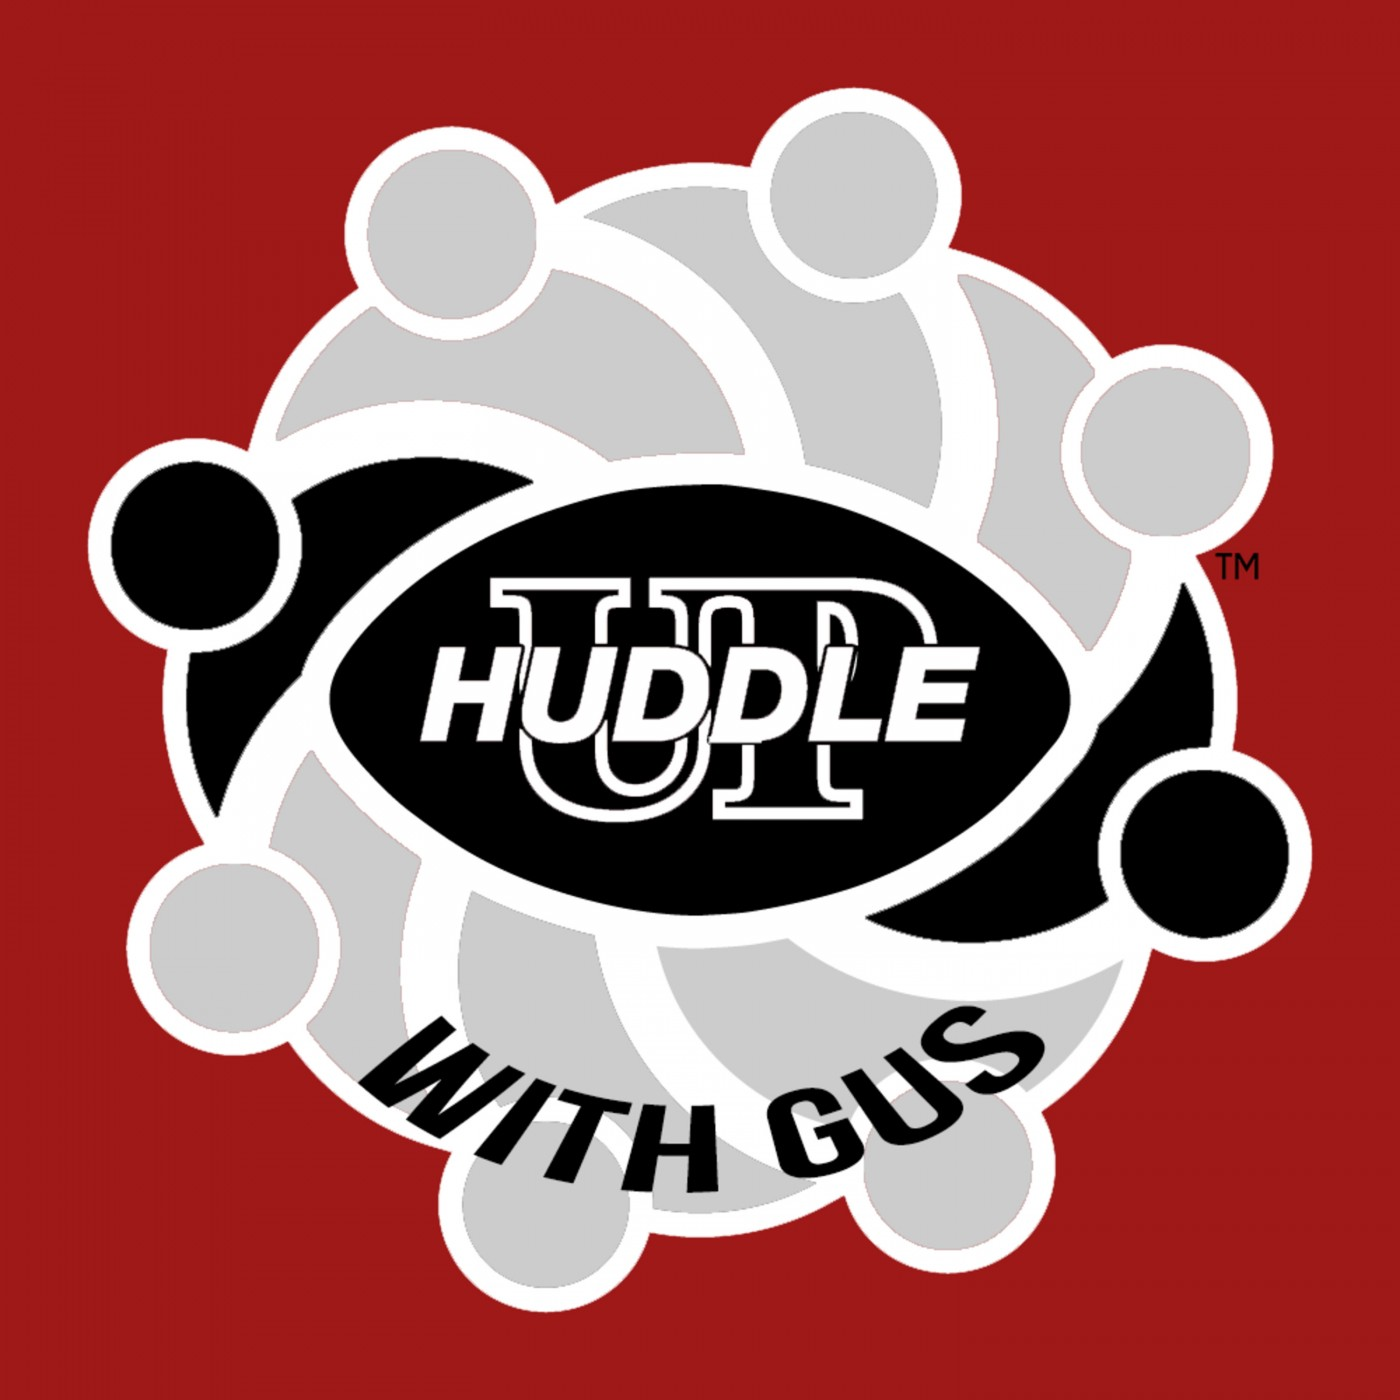 Huddle Up with Gus